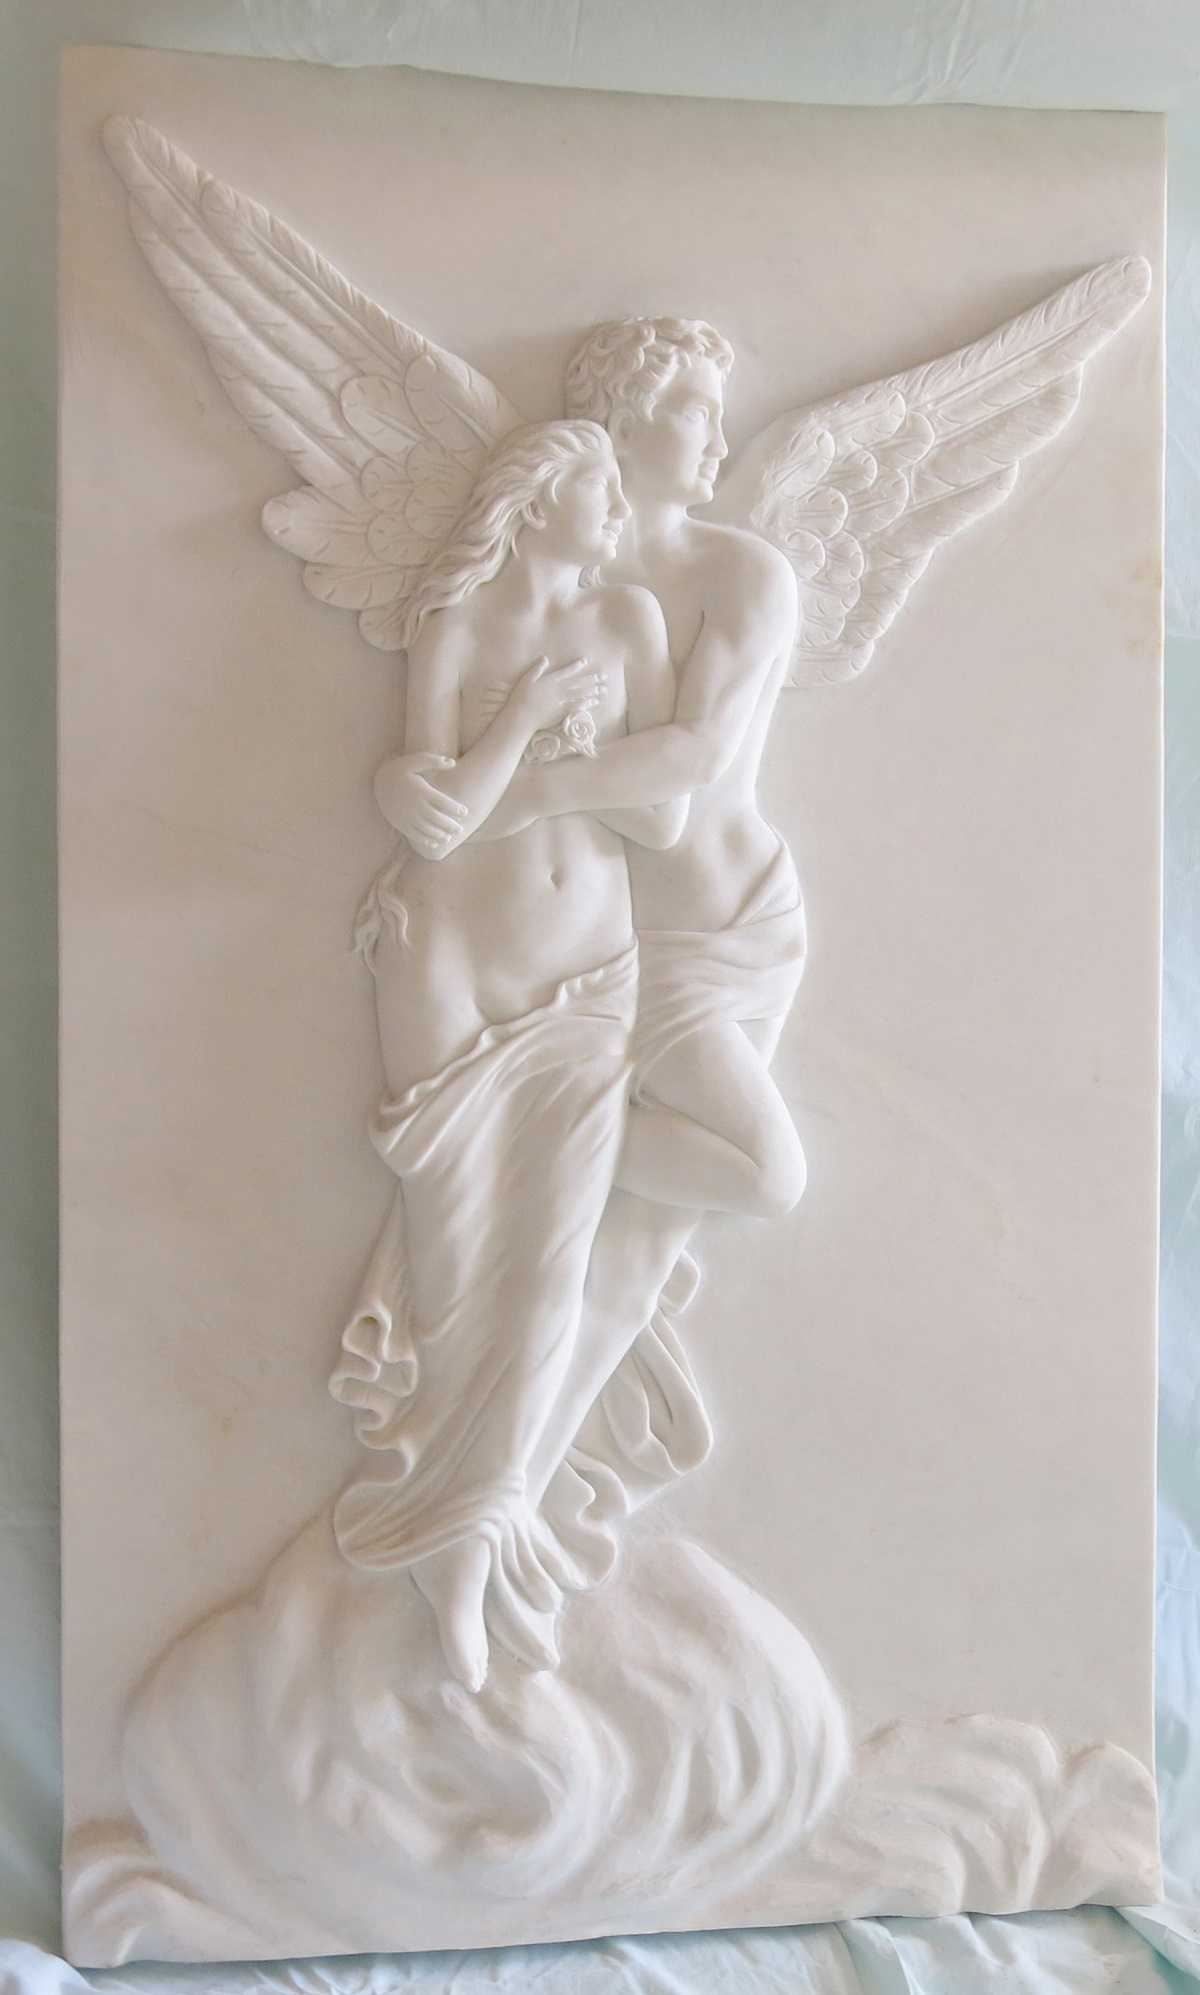 Bas-relief Cupid and Psyche: bas-relief in white marble depicting Cupid and Psyche. Dimensions 30x80